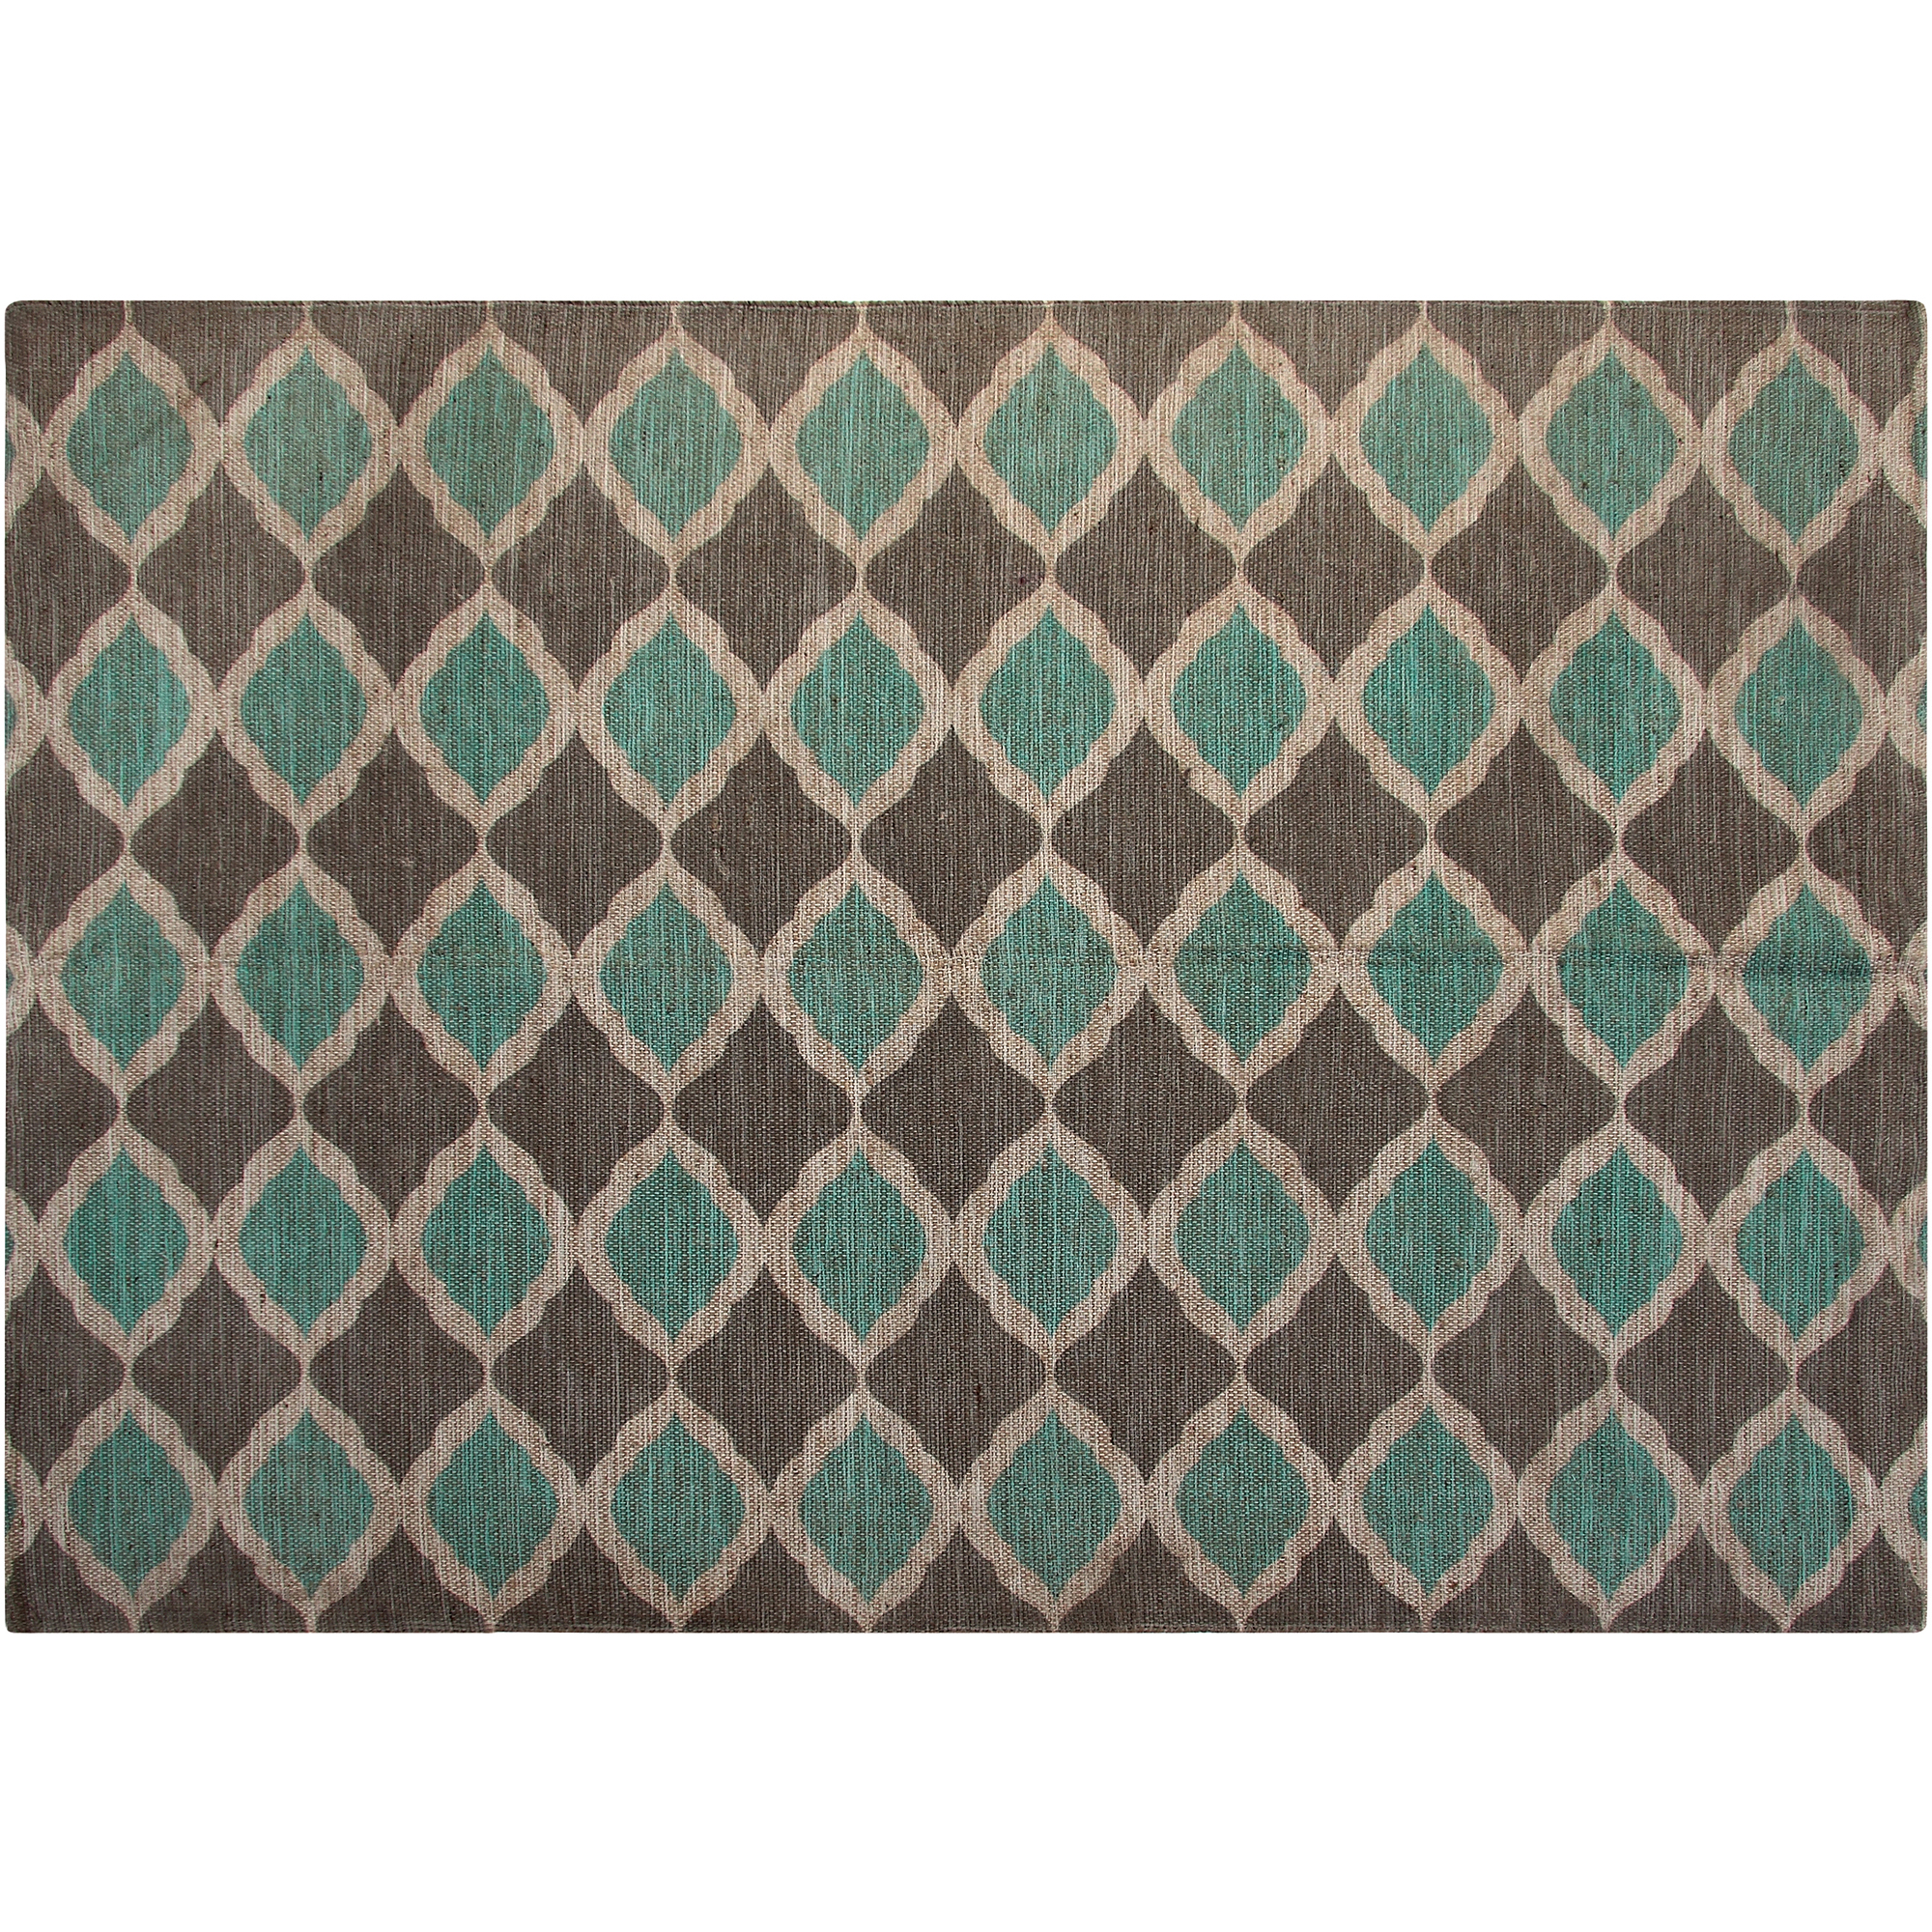 jute and cotton printed 5u0027 x 7u0027 area rug turquoise and taupe matrix